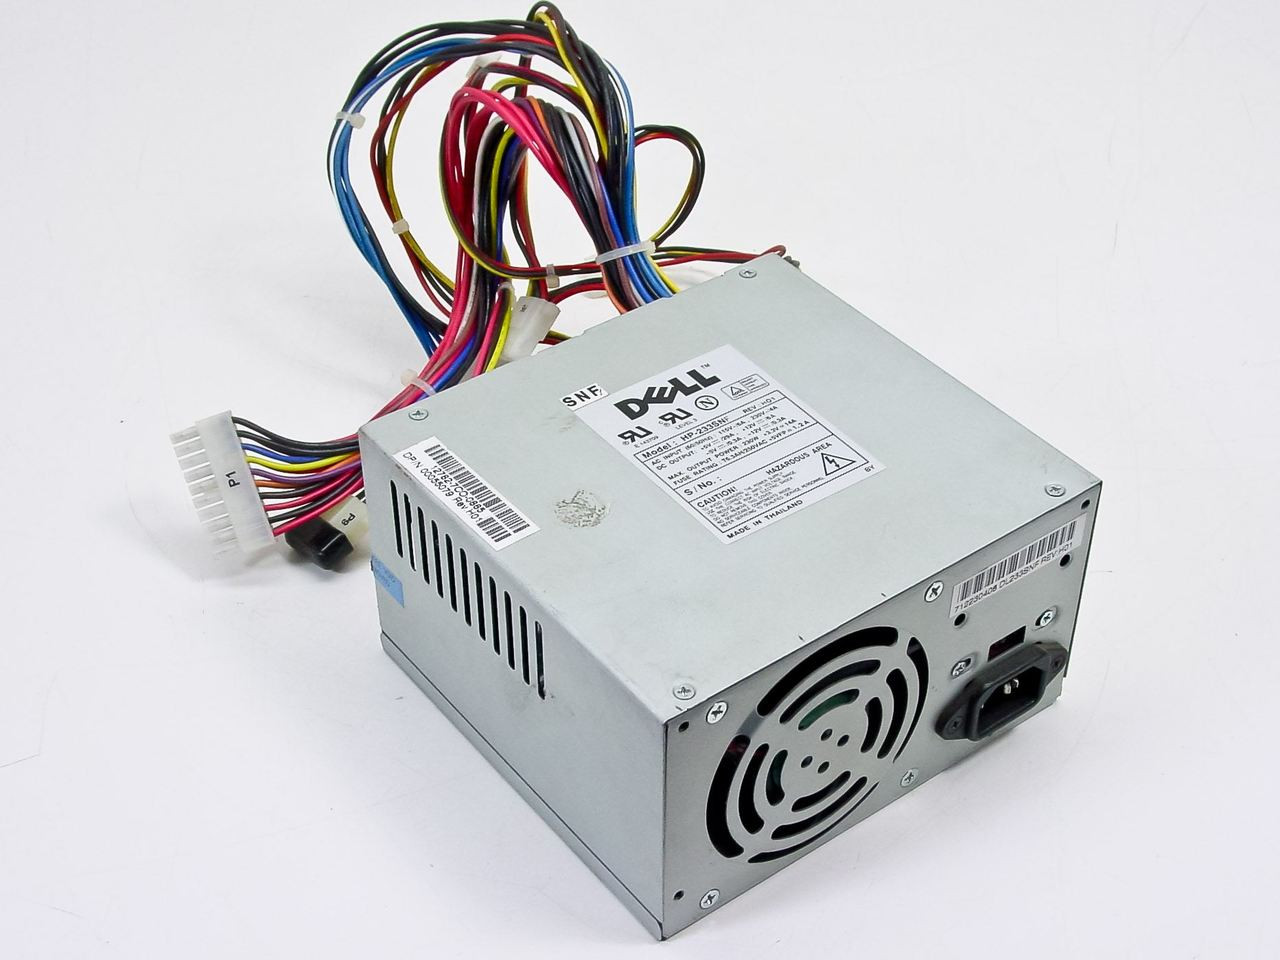 dell power supply hp 233snf 55079 1.39__89596.1489997310?c=2 dell 55079 power supply hp 233snf recycledgoods com  at honlapkeszites.co